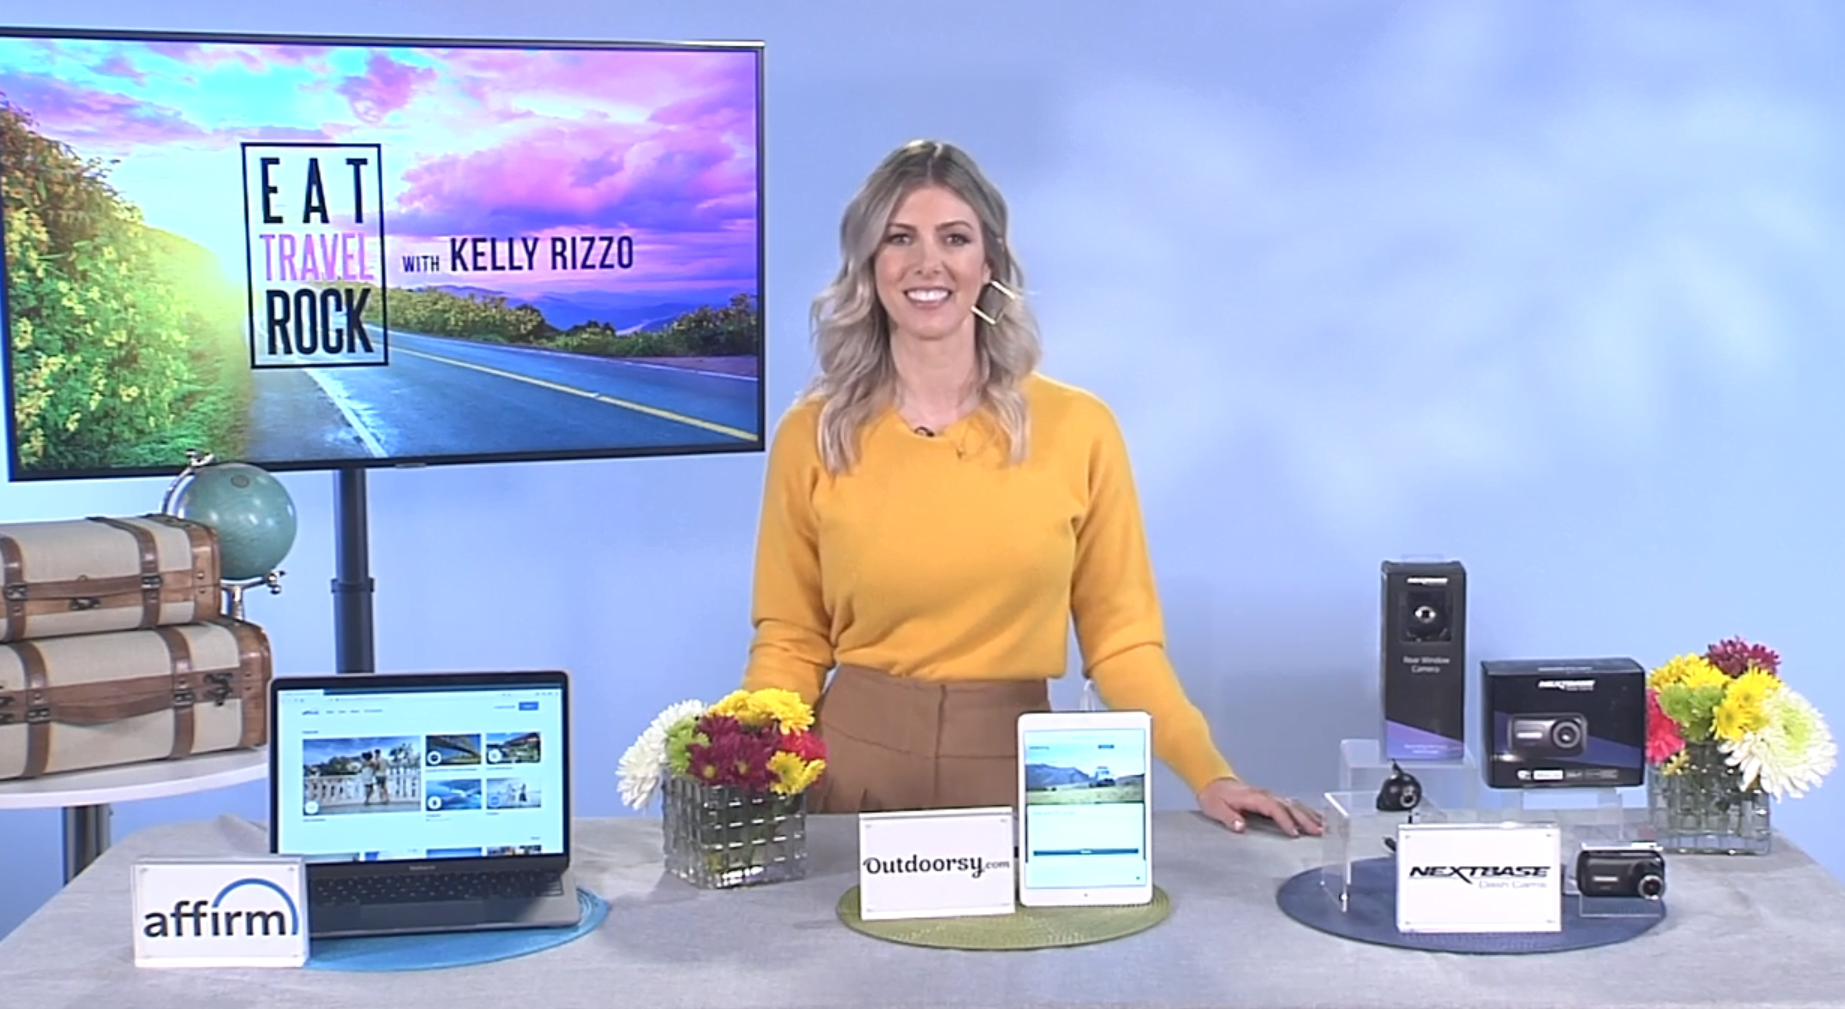 TV Host Kelly Rizzo Shares Spring Travel Tips With the TipsOnTV